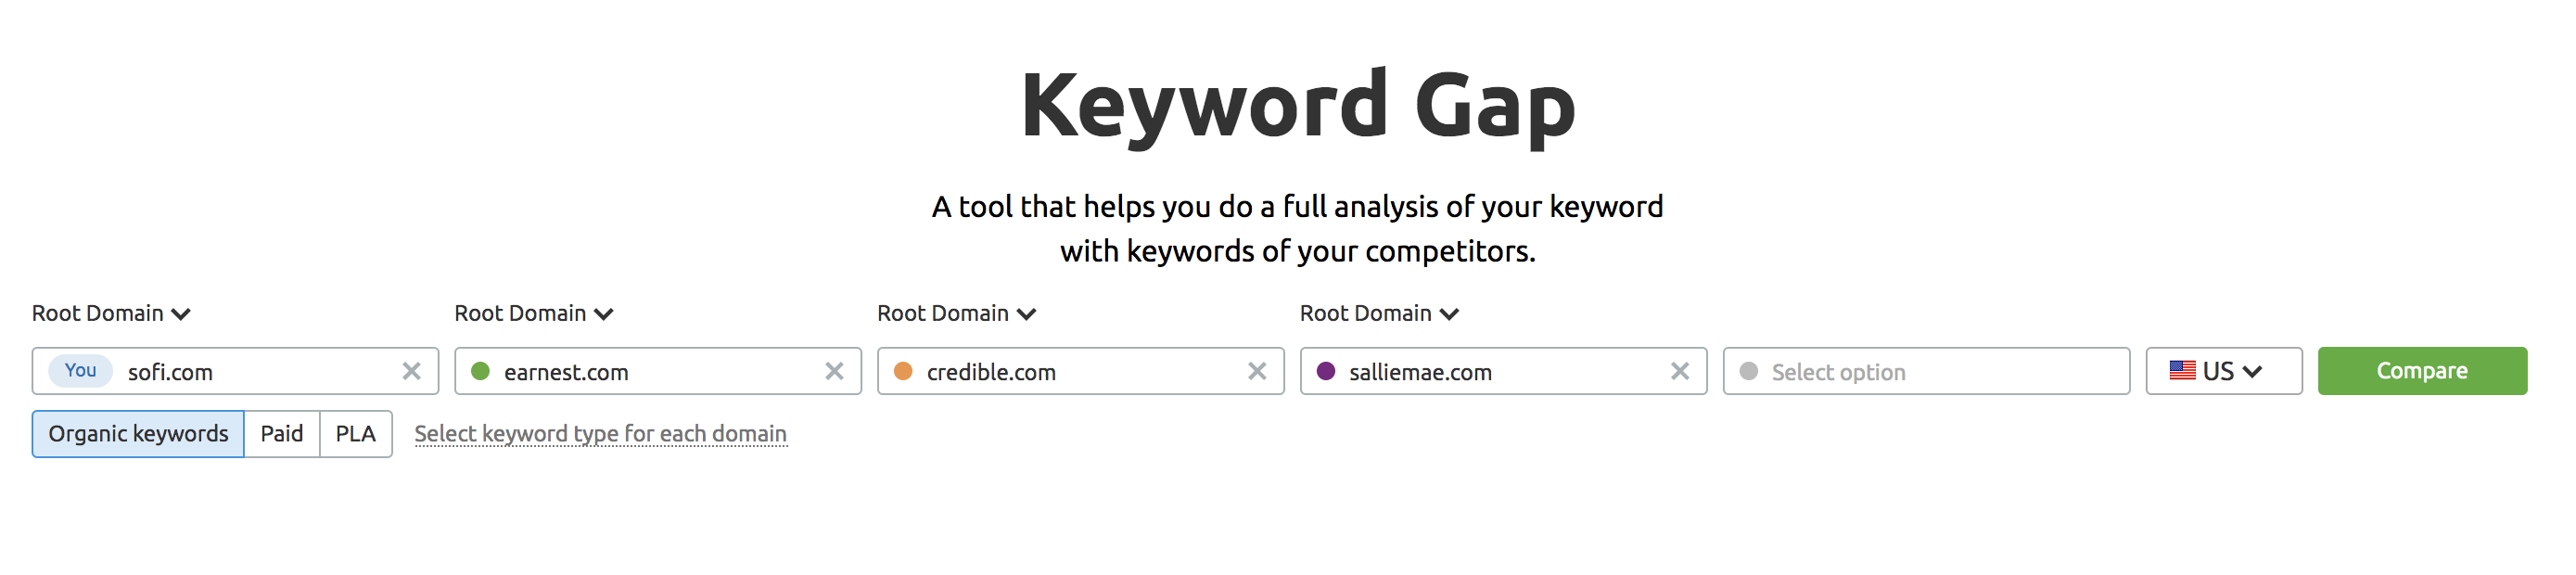 SEMrush Keyword Gap Analysis screenshot